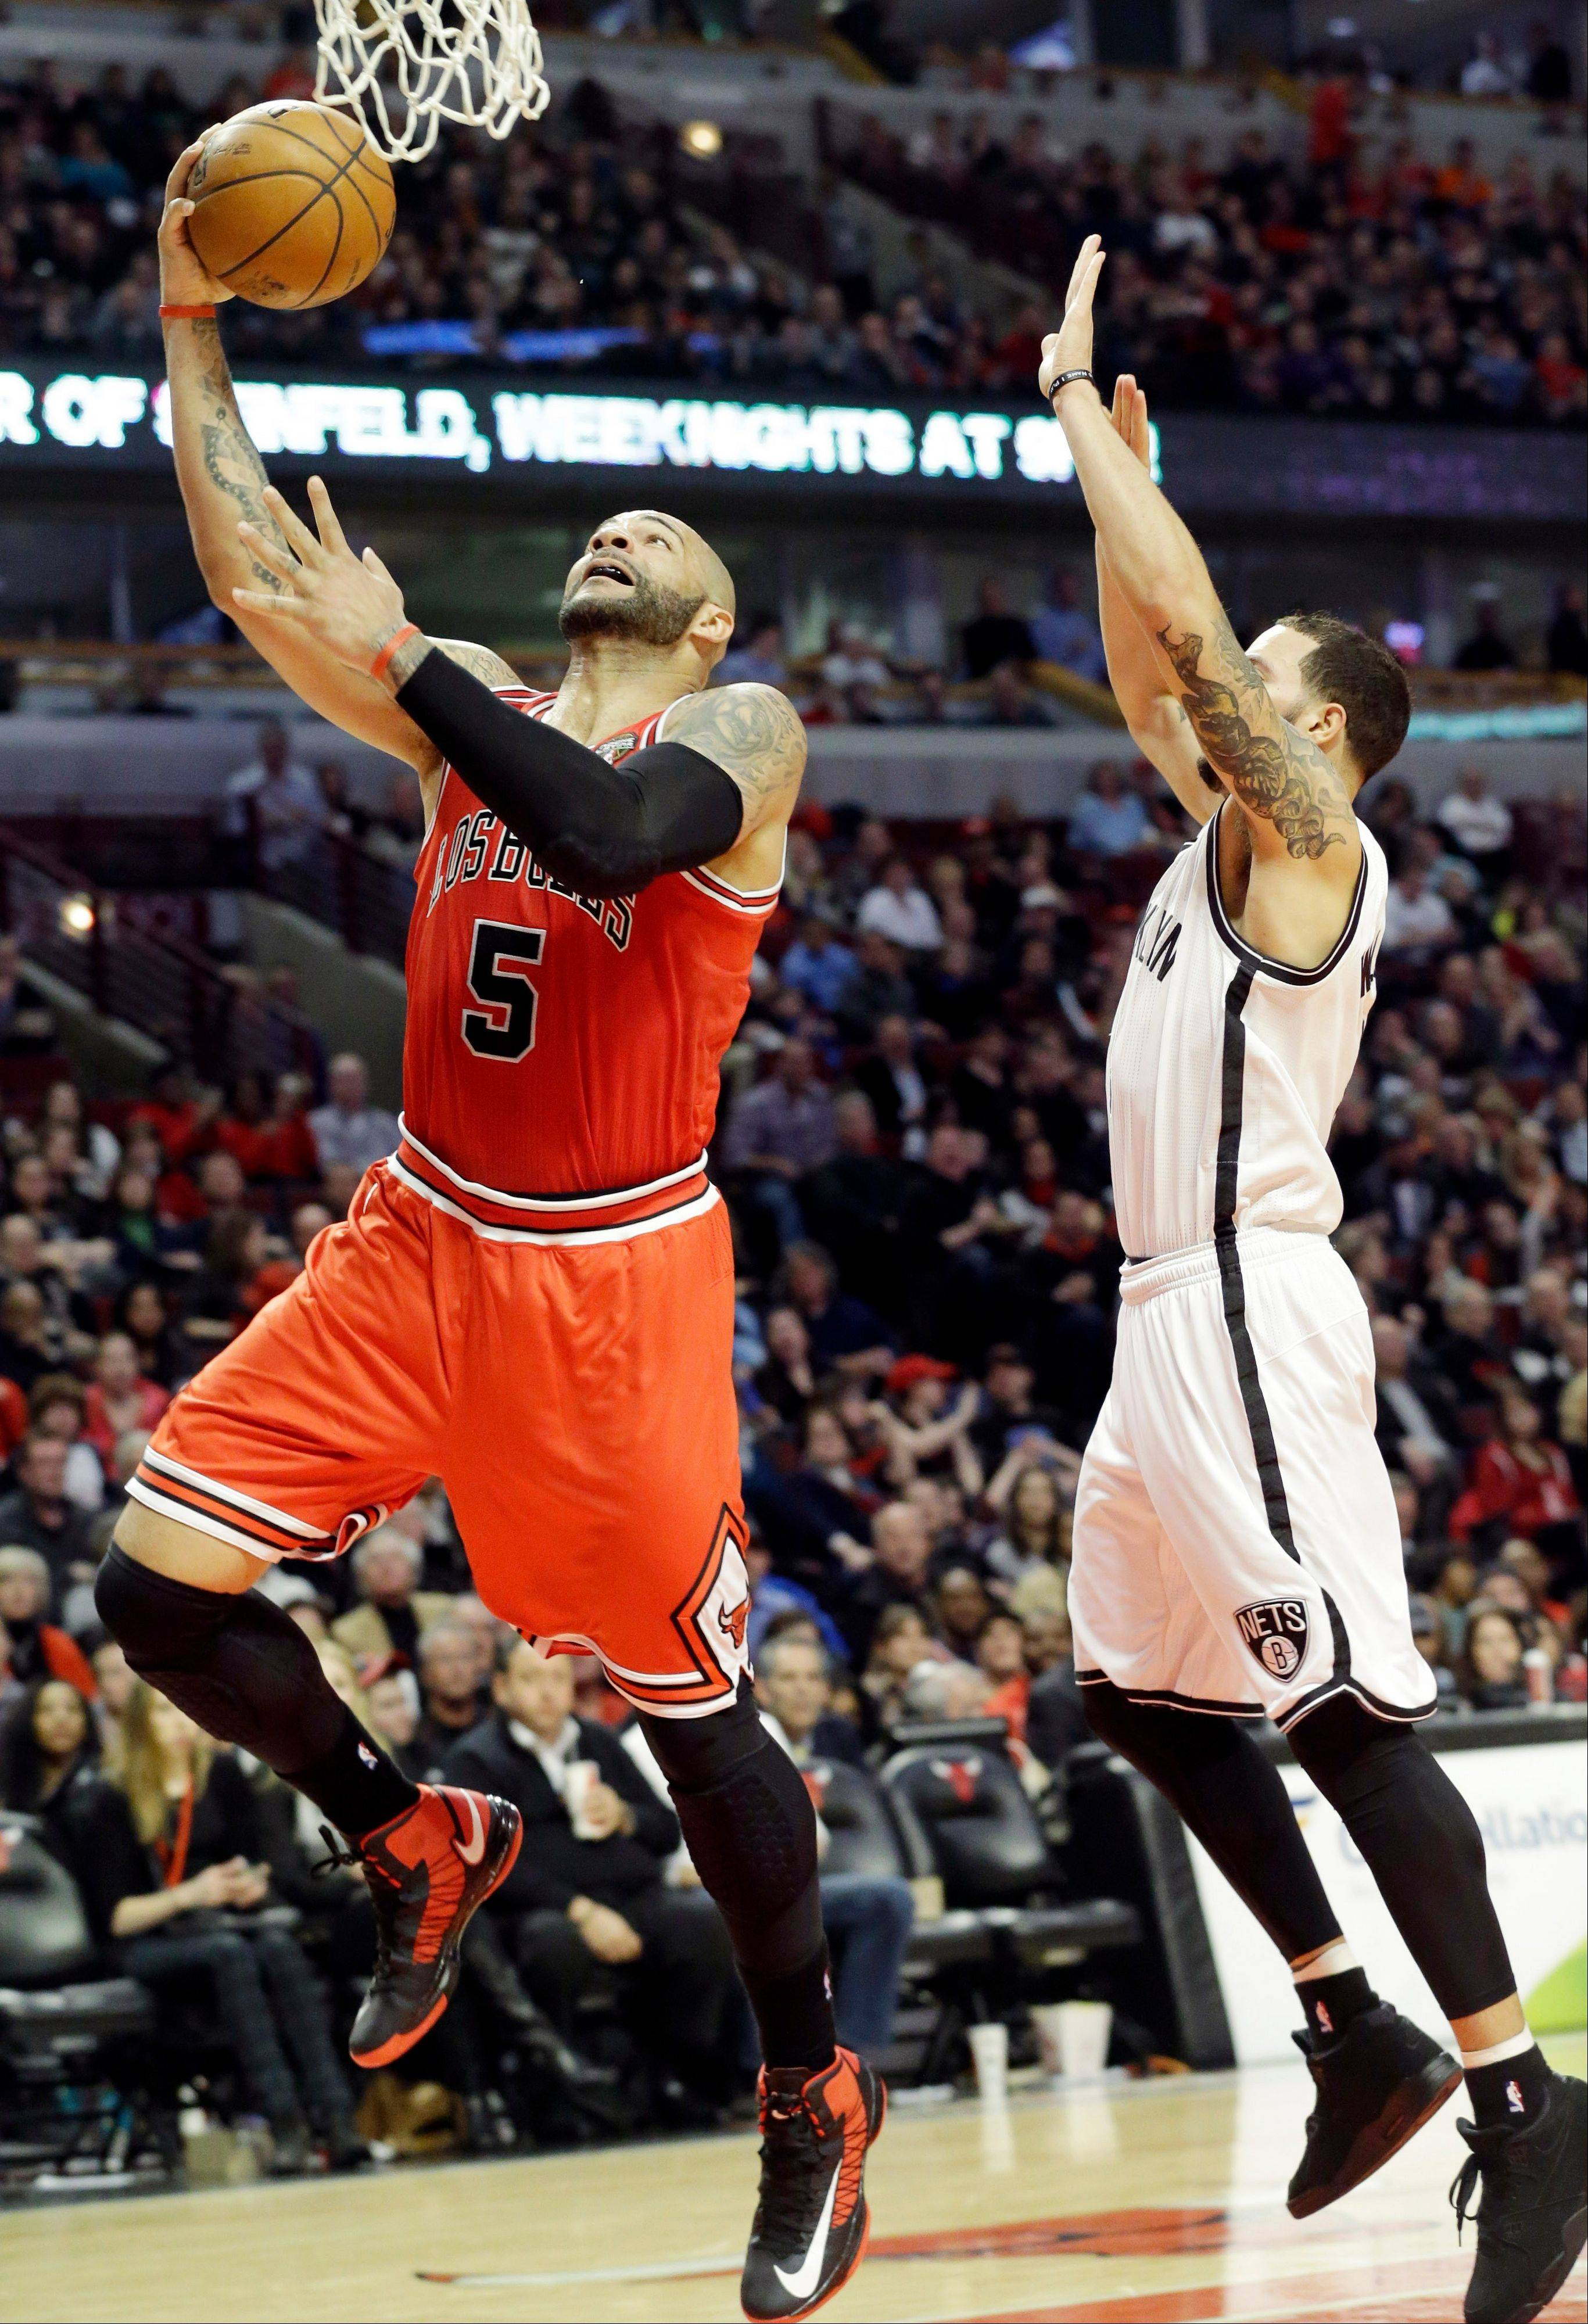 Bulls forward Carlos Boozer drives to the basket past Brooklyn Nets guard Deron Williams.